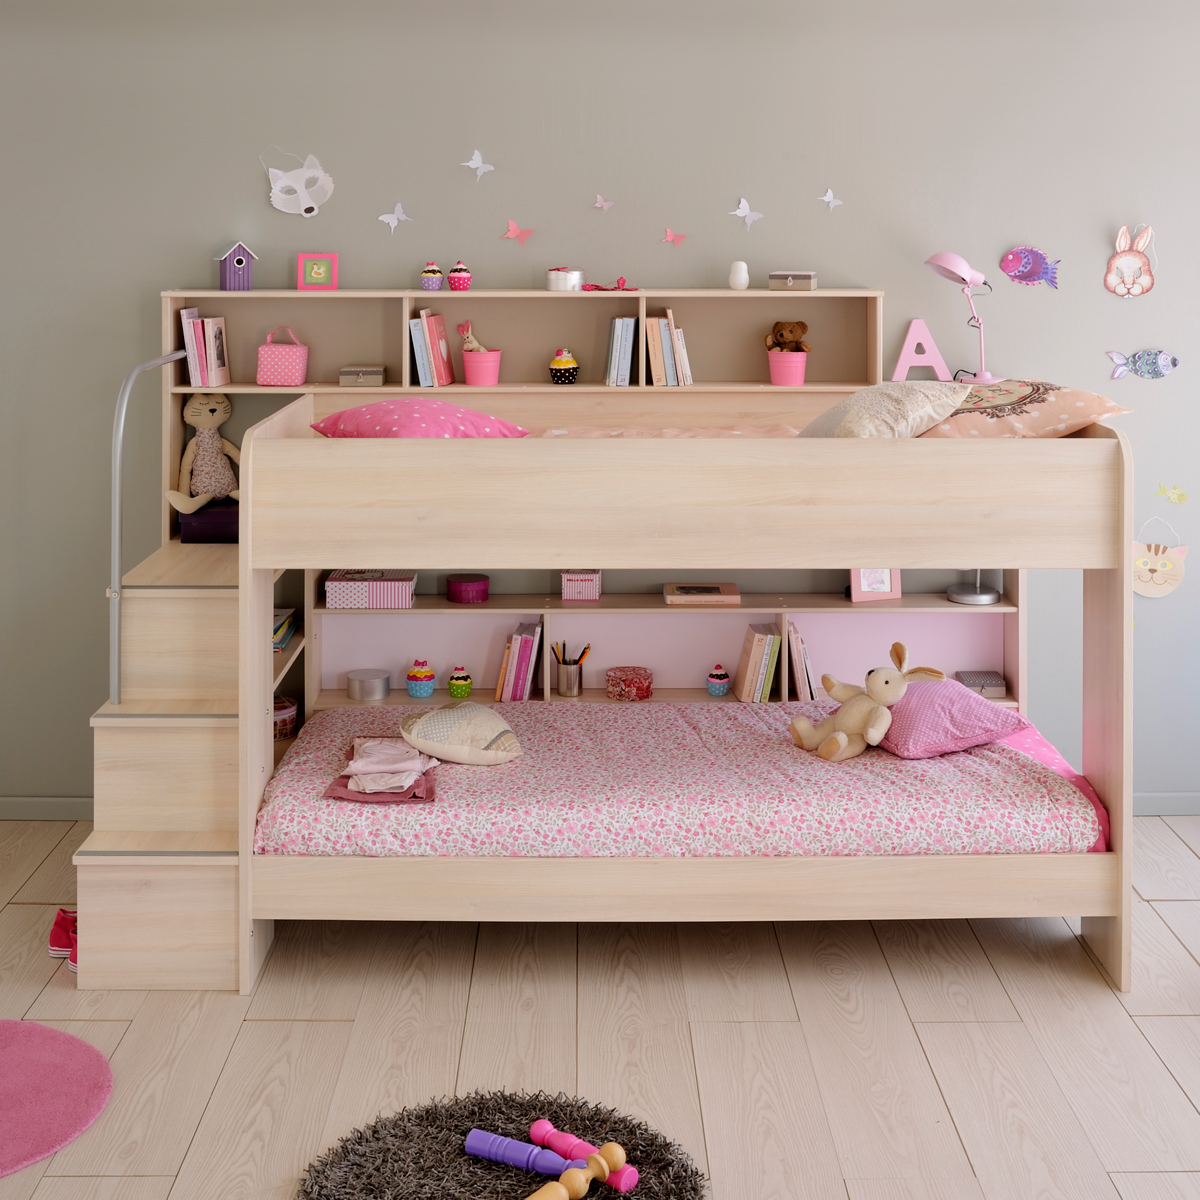 etagenbett bibop hochbett in akazie dekor mit treppe b cherregalen stauraum ebay. Black Bedroom Furniture Sets. Home Design Ideas